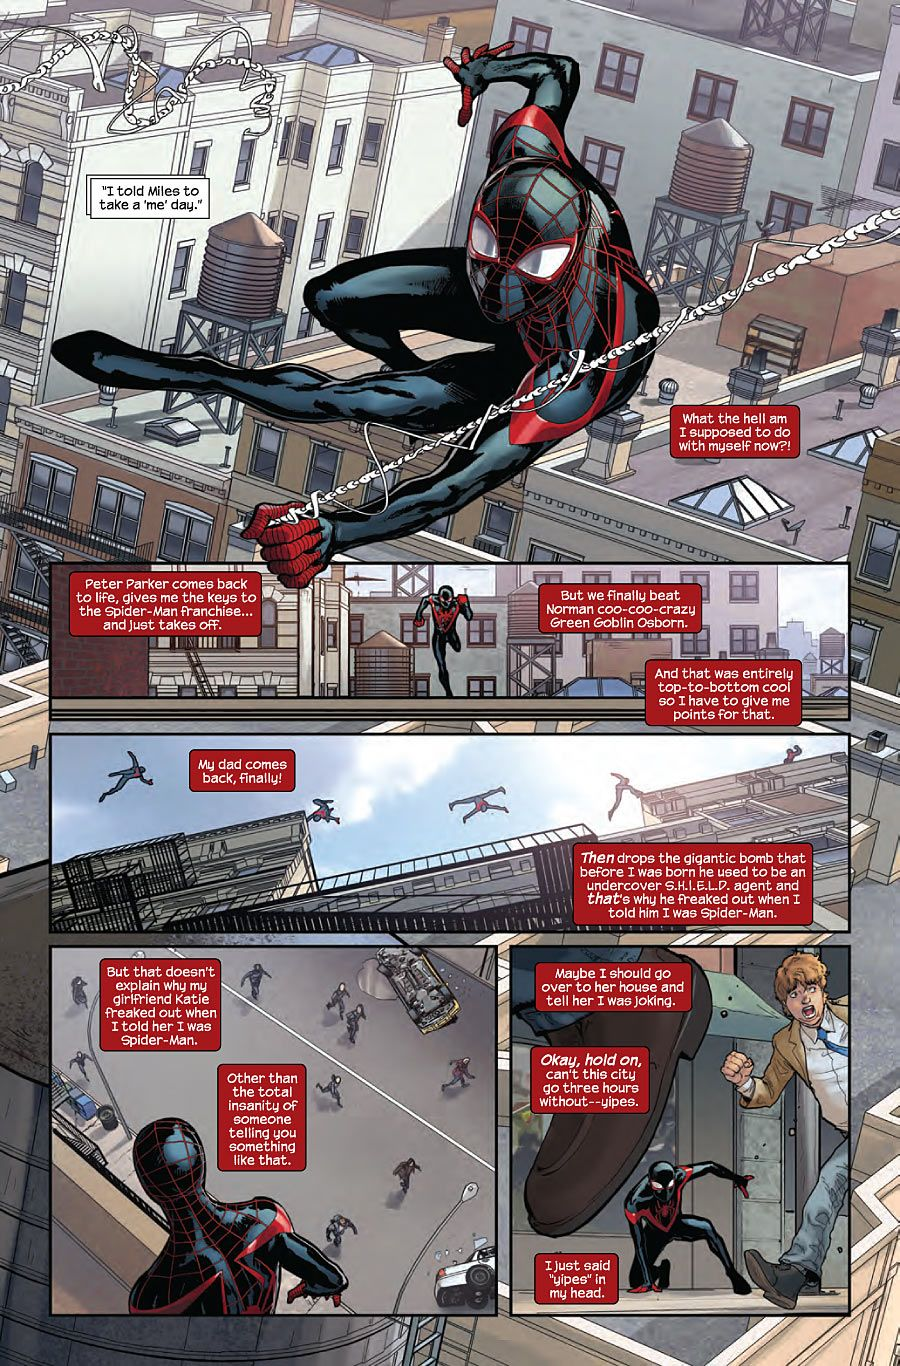 Miles Morales: The Ultimate Spider-Man #10